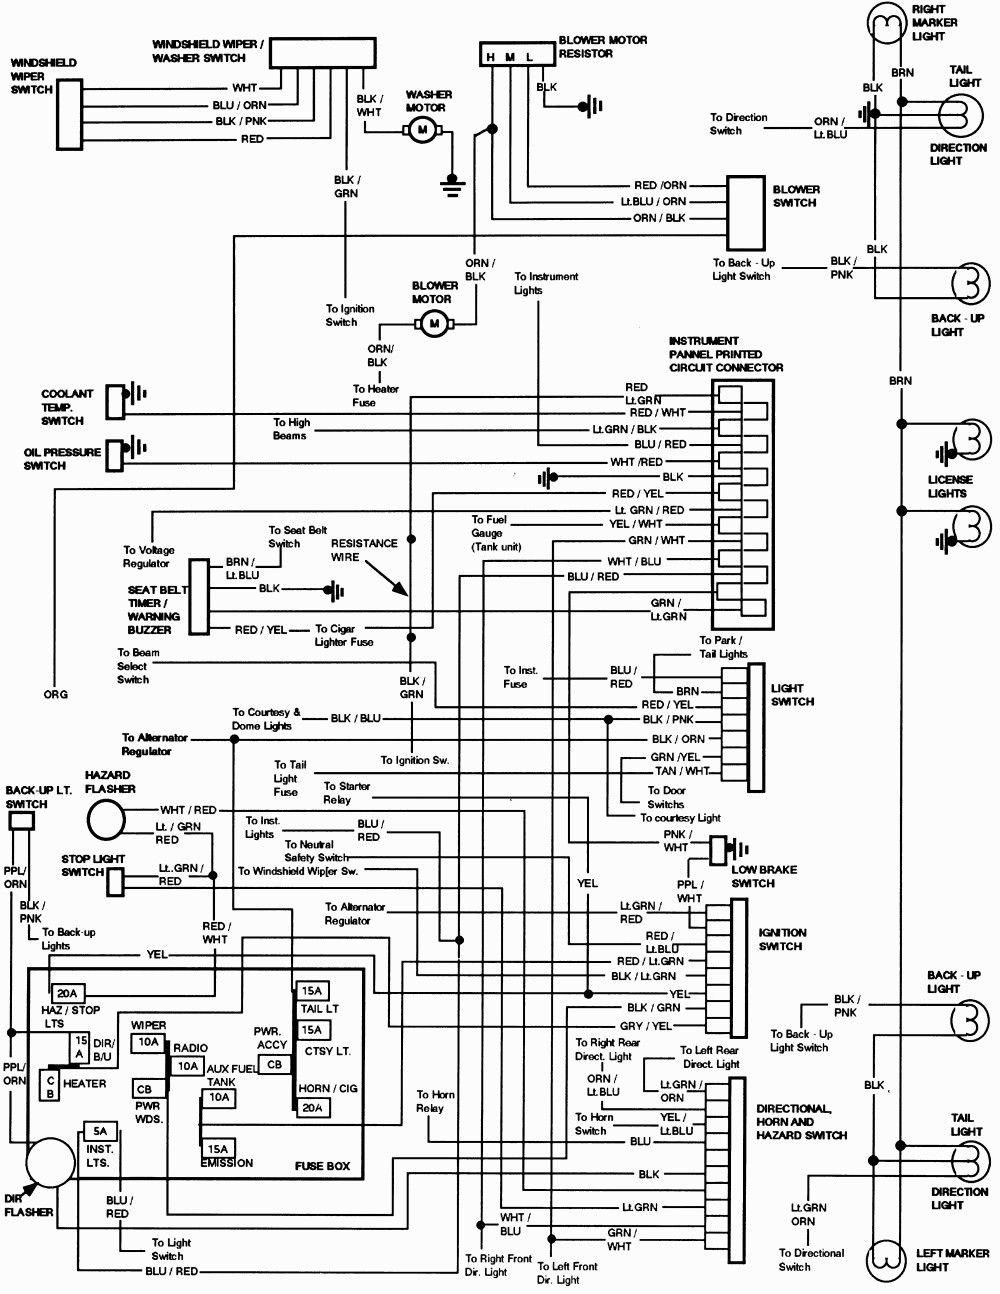 89 e150 wiring diagram wiring diagram content 1989 Mustang Wiring Diagram